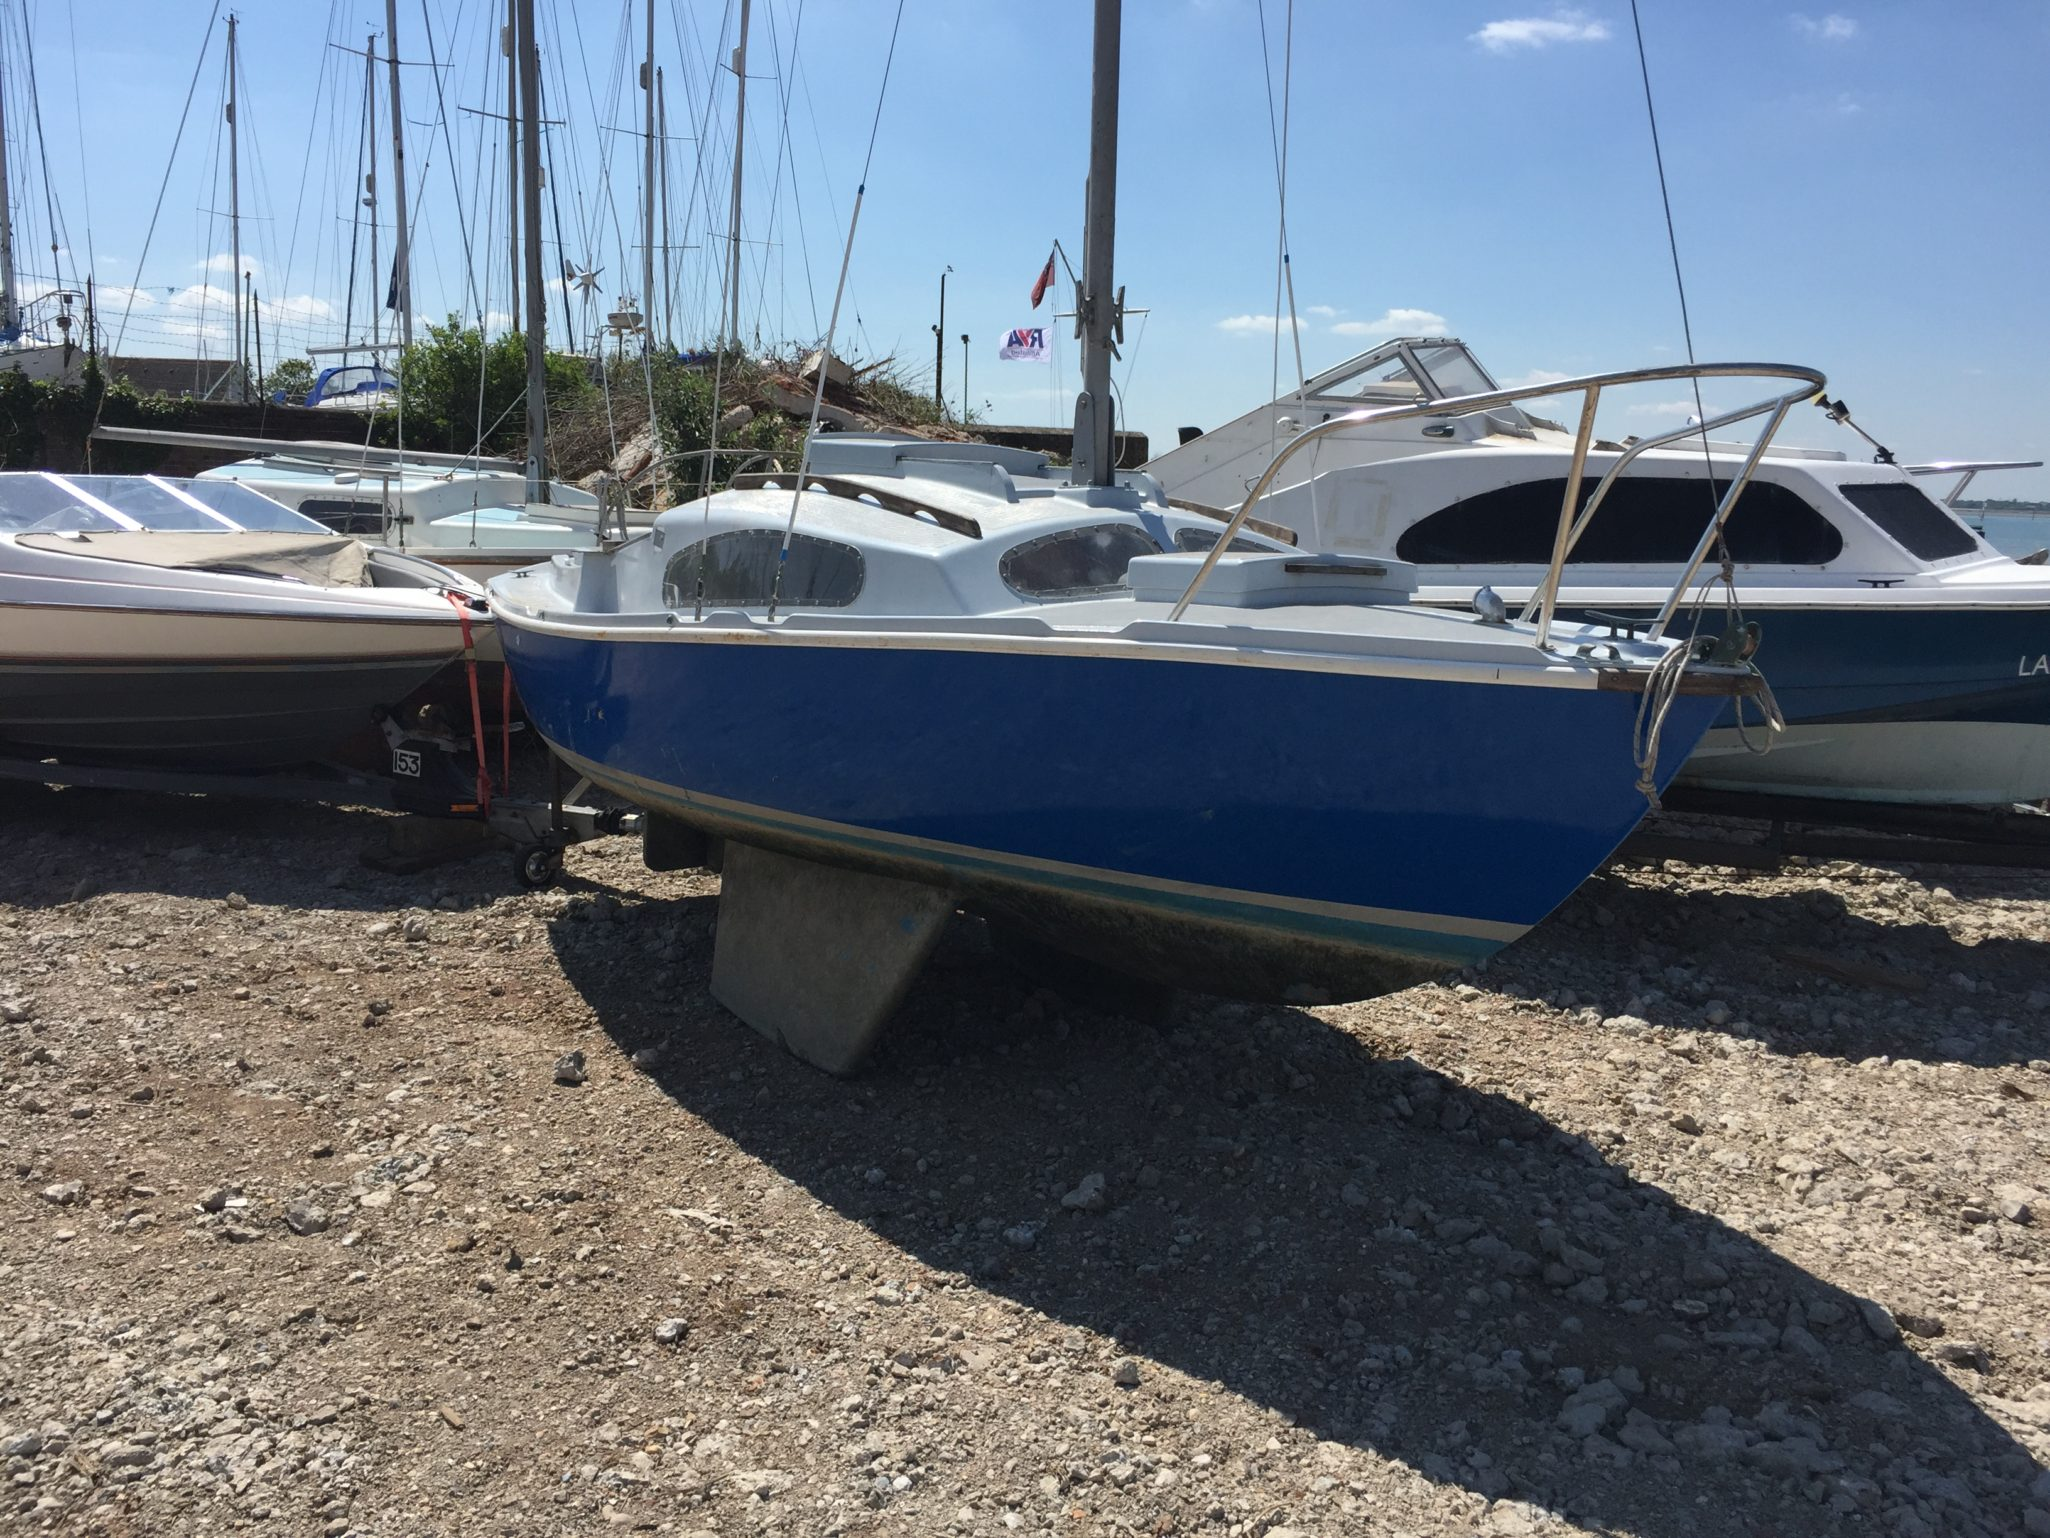 Boatbreakers News - Latest Arrivals to the Boatbreakers Yard